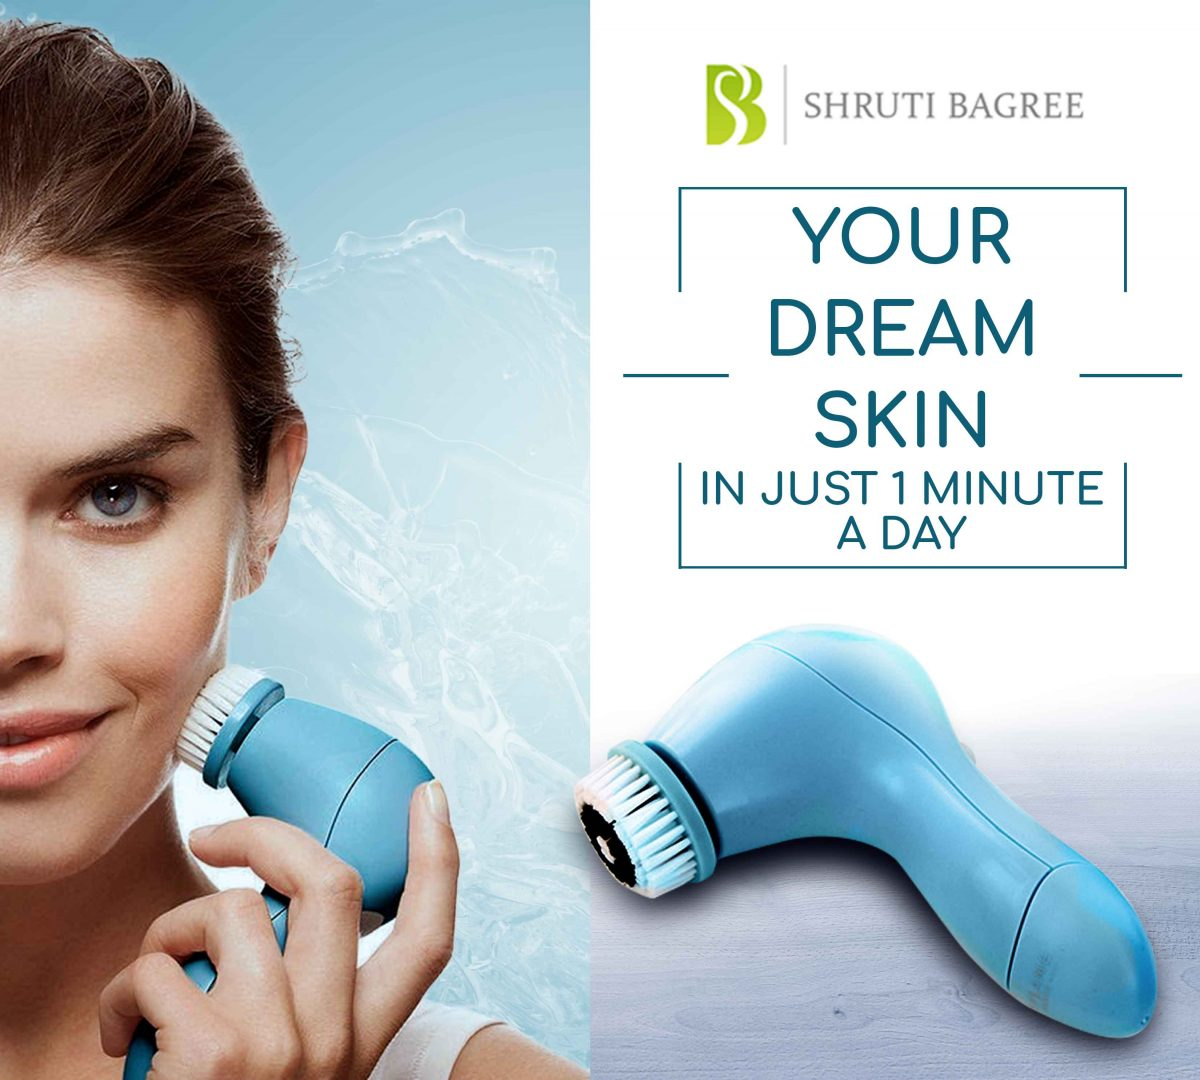 Get Flawless Skin in just 1 min a day with SkinPro Cleansing System